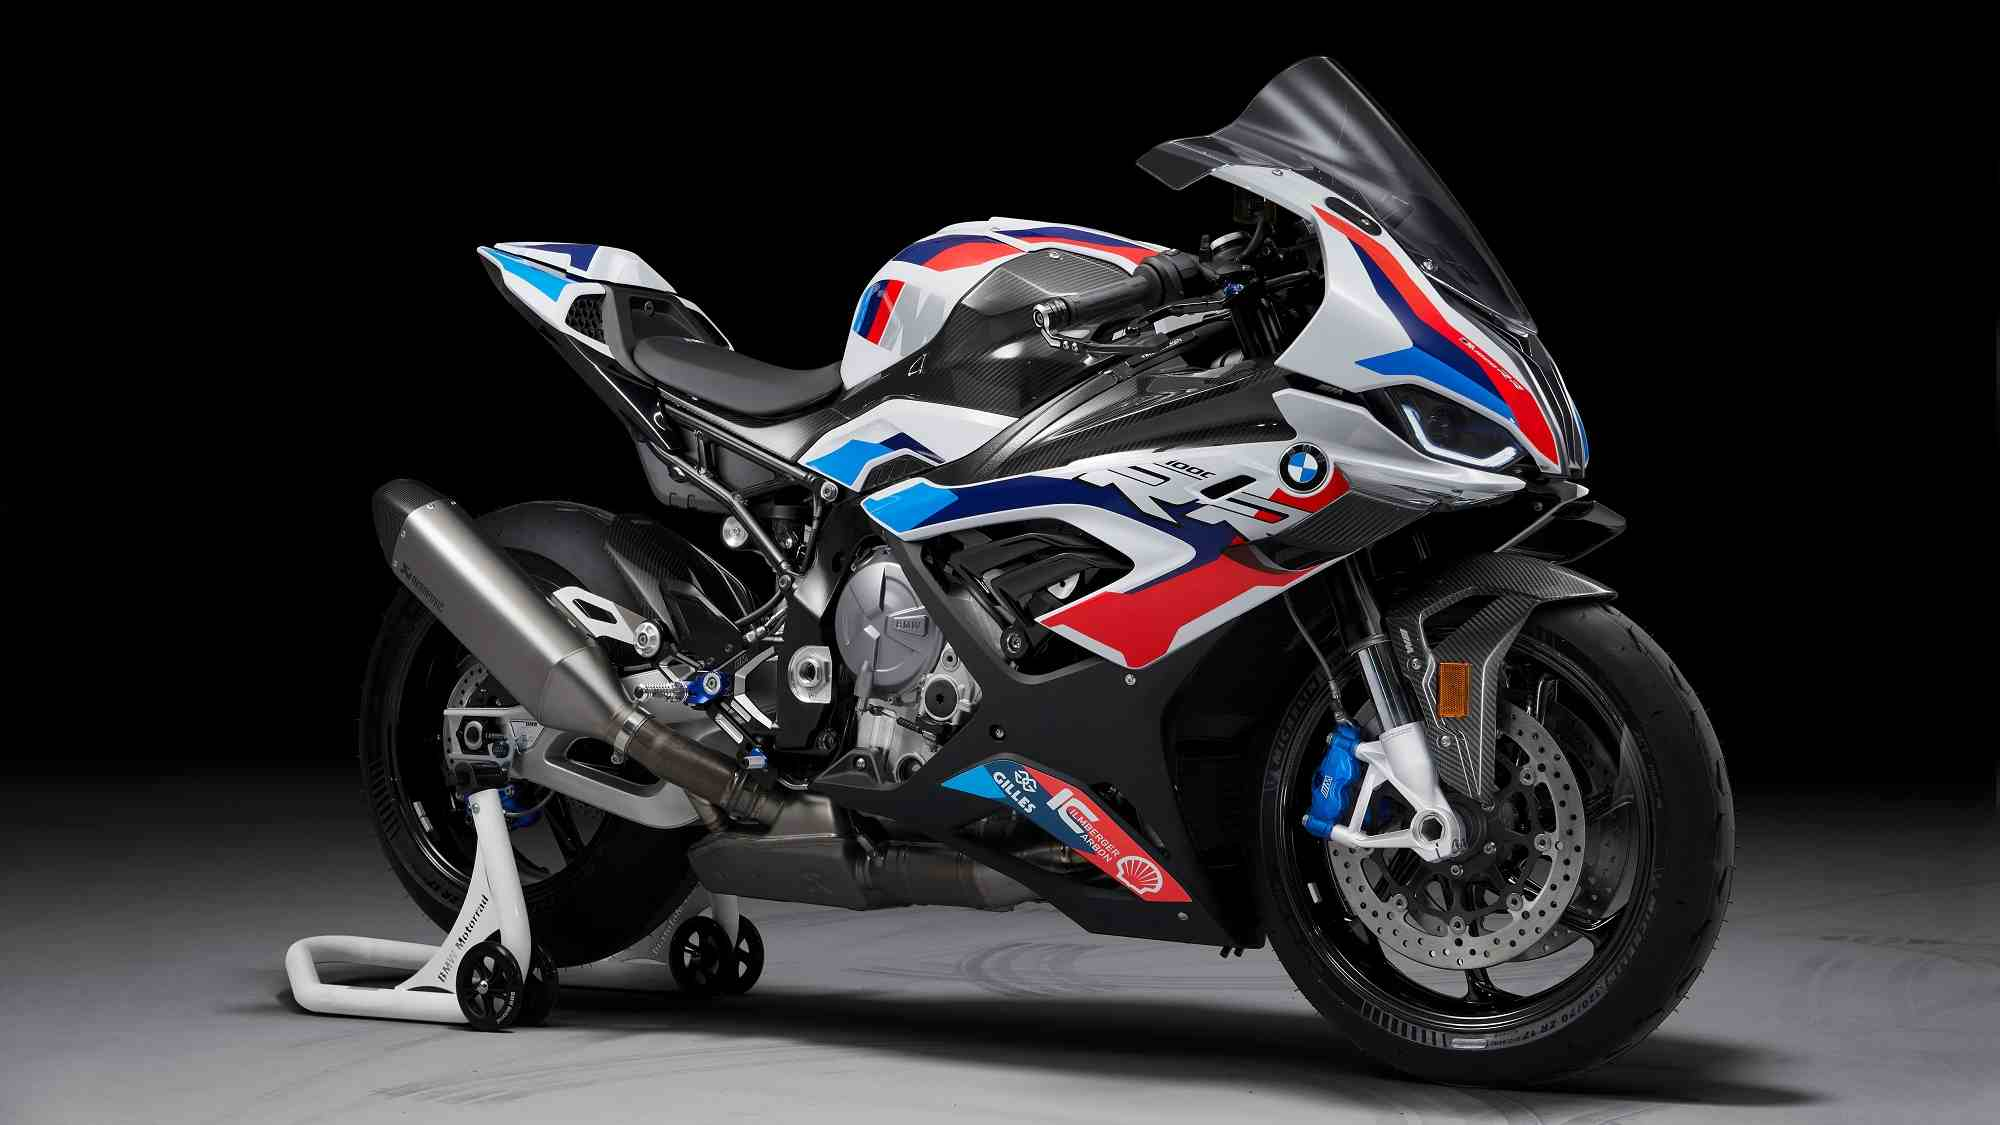 BMW M1000RR launched in India at Rs 42 lakh, also available in Competition form- Technology News, FP